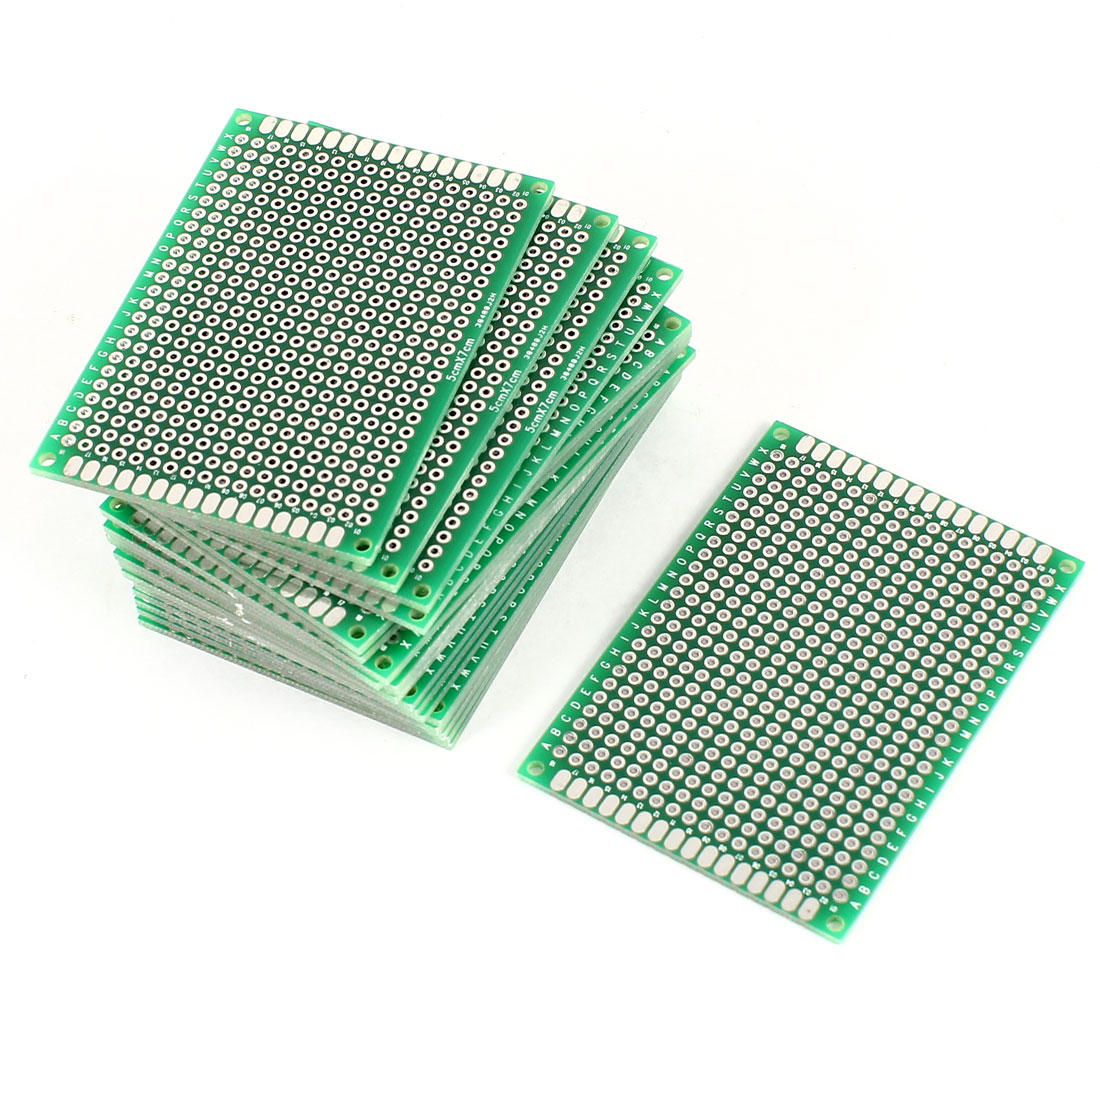 20Pcs 5cm x 7cm Double Sided Prototype Paper Tinned Universal PCB Print Circuit Board for DIY